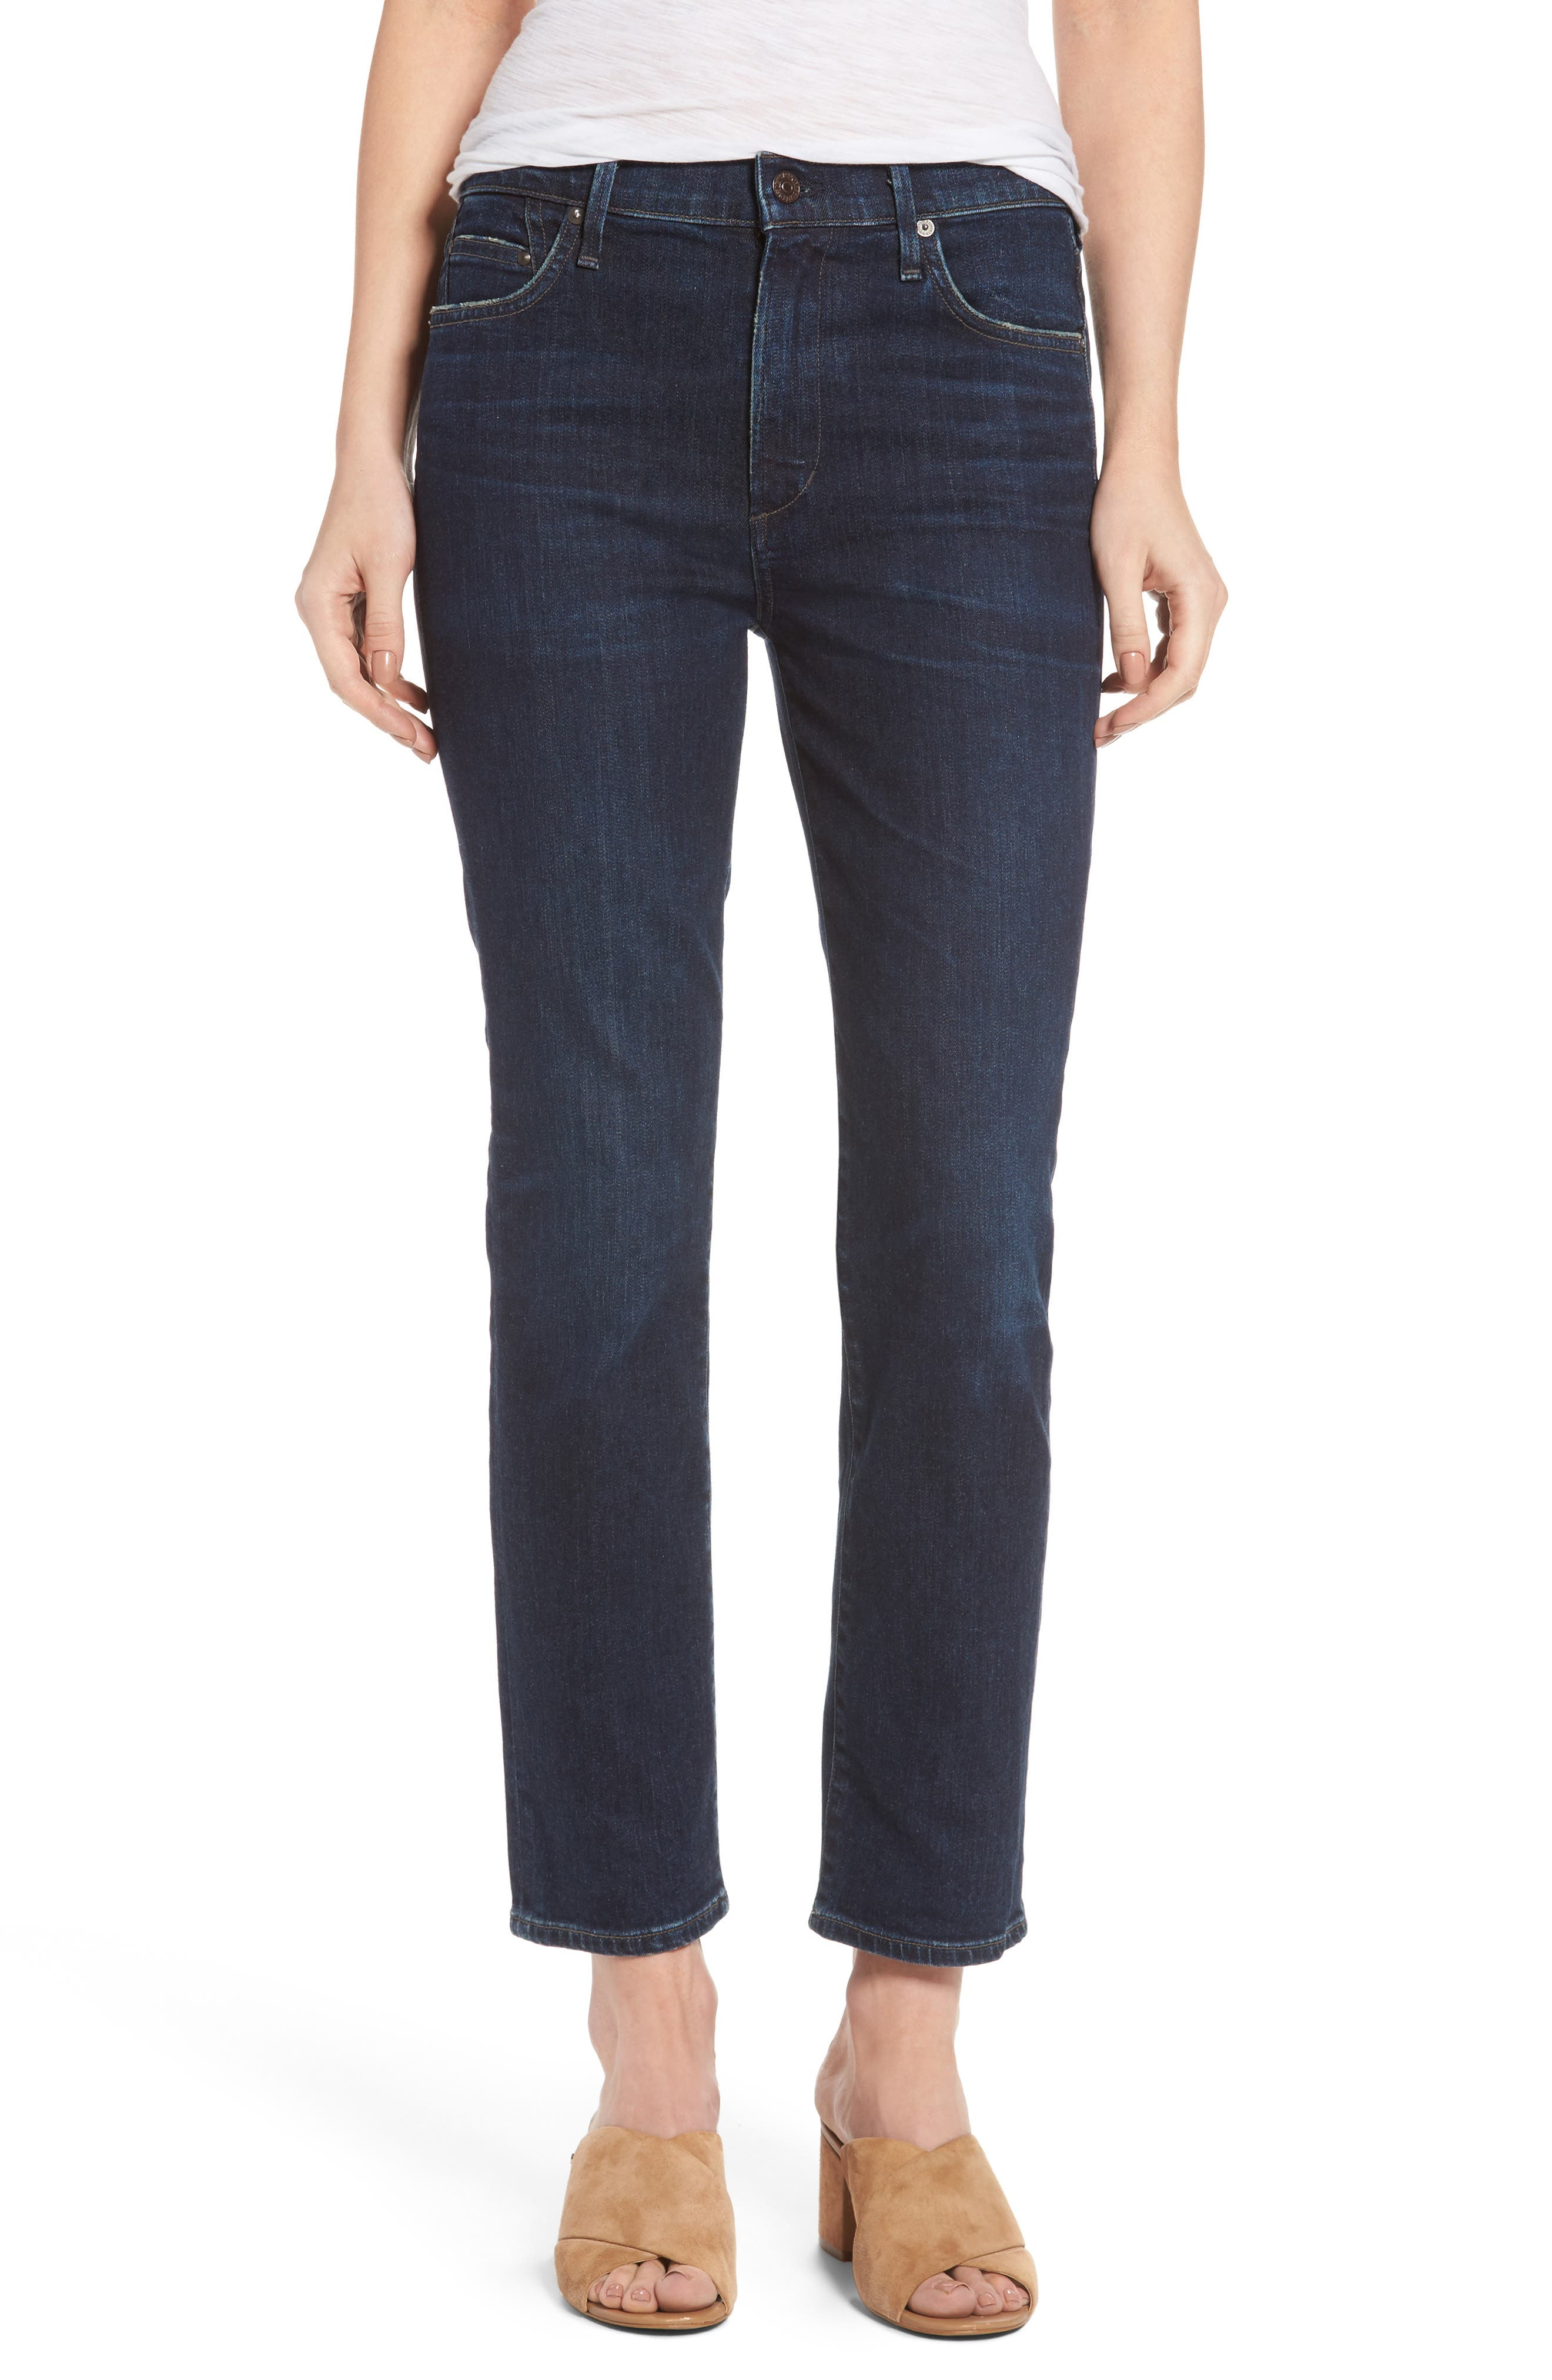 Alternate Image 1 Selected - Citizens of Humanity Cara Ankle Cigarette Jeans (Maya)